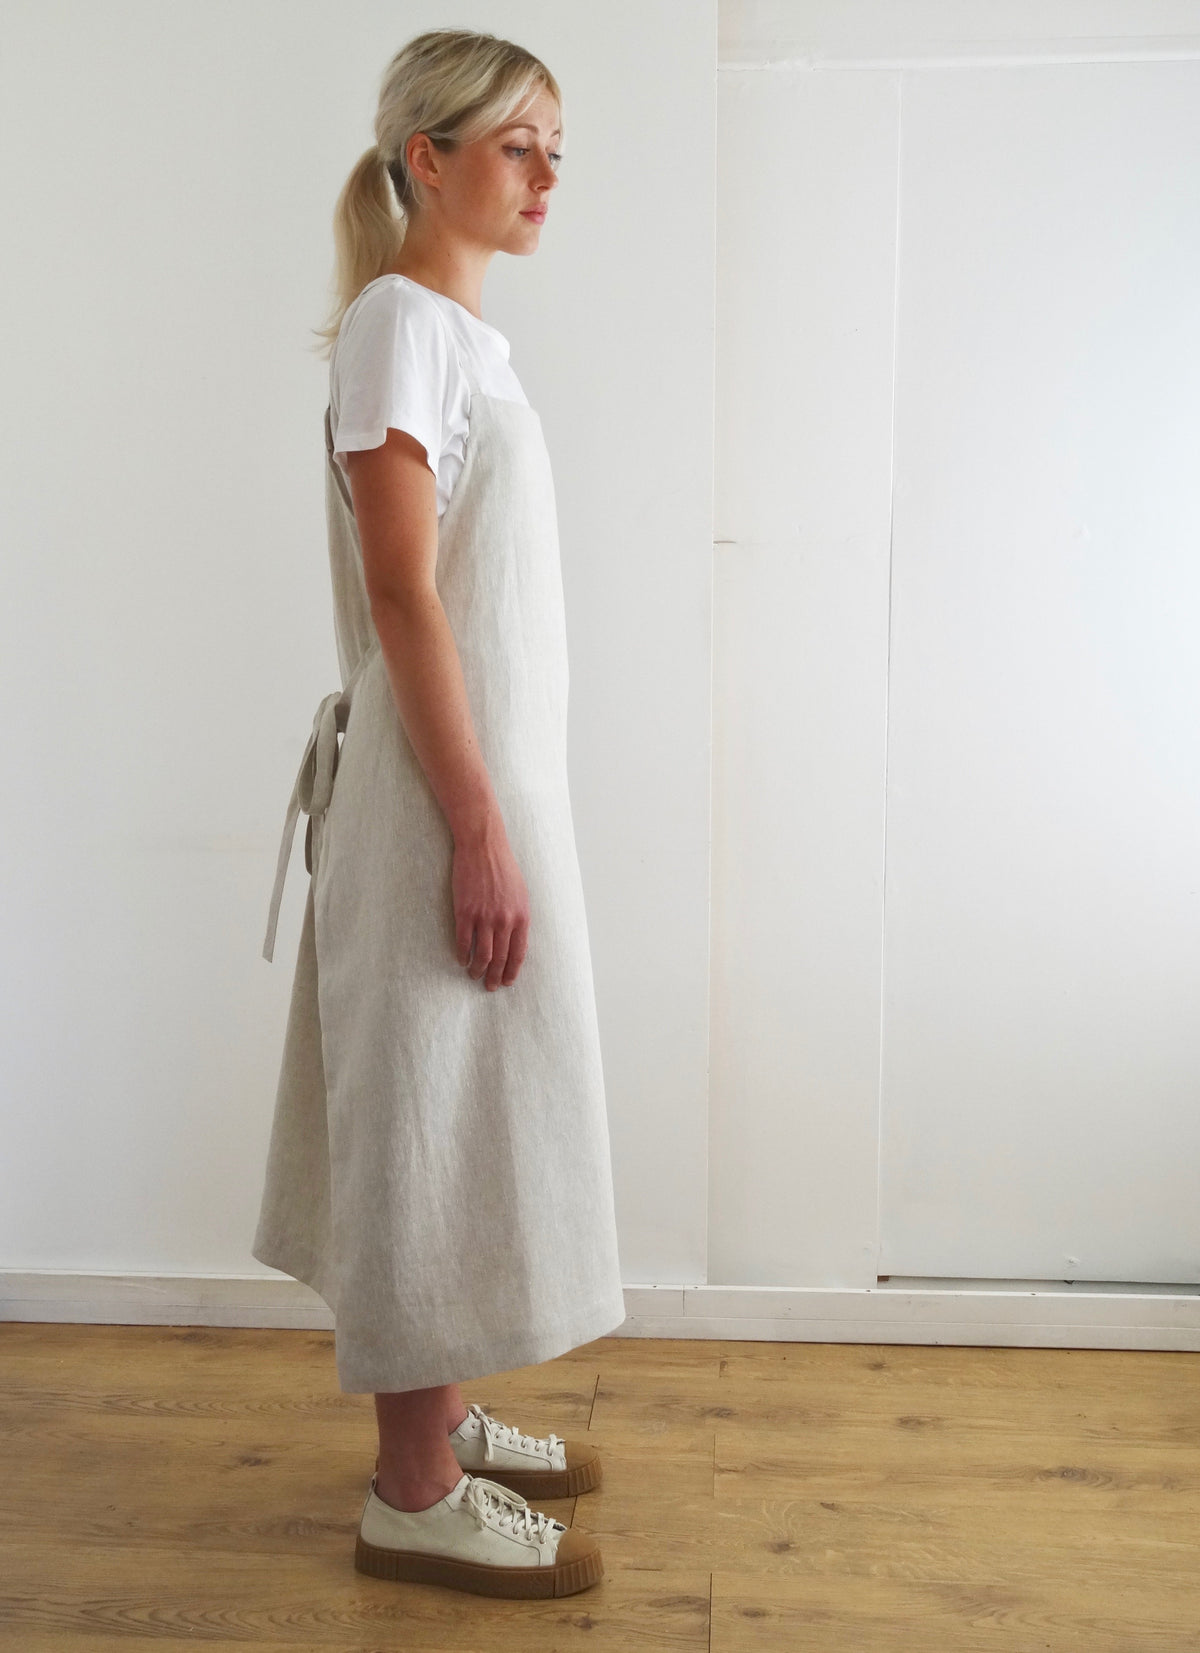 side view of young woman wearing a cream linen apron dress